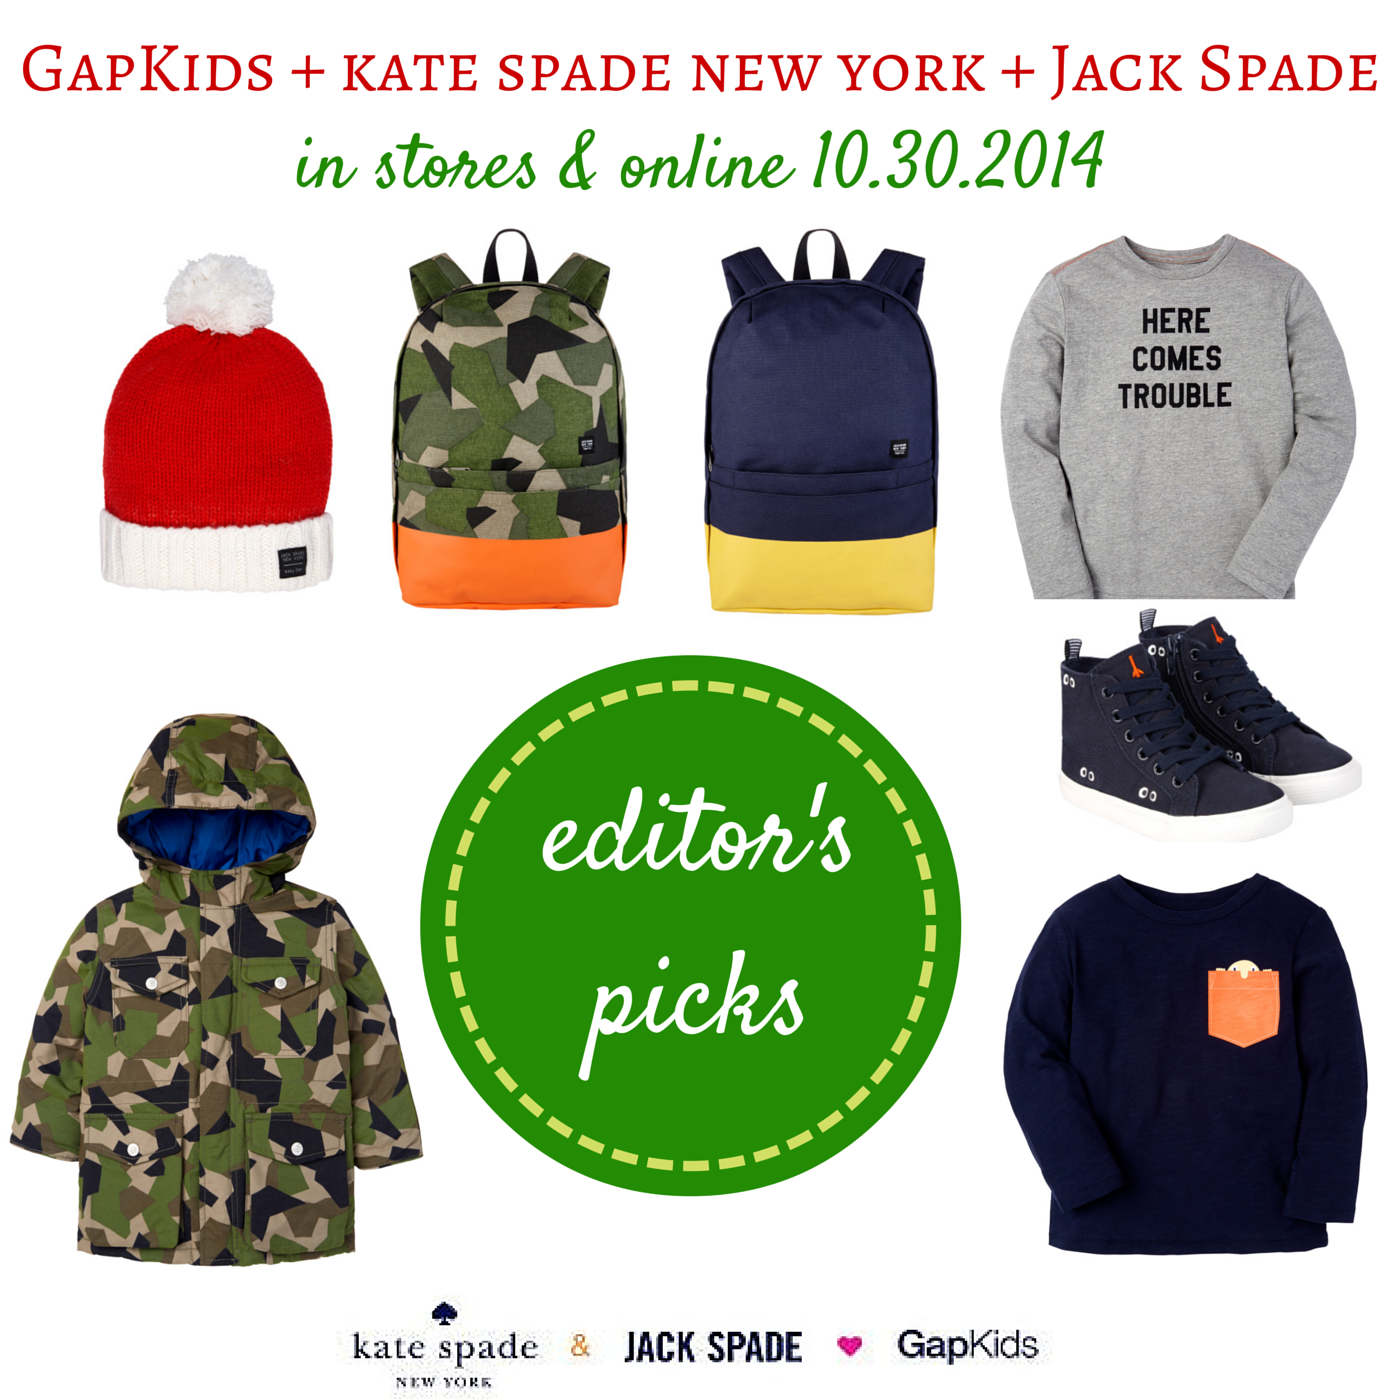 GapKids and kate spade new york